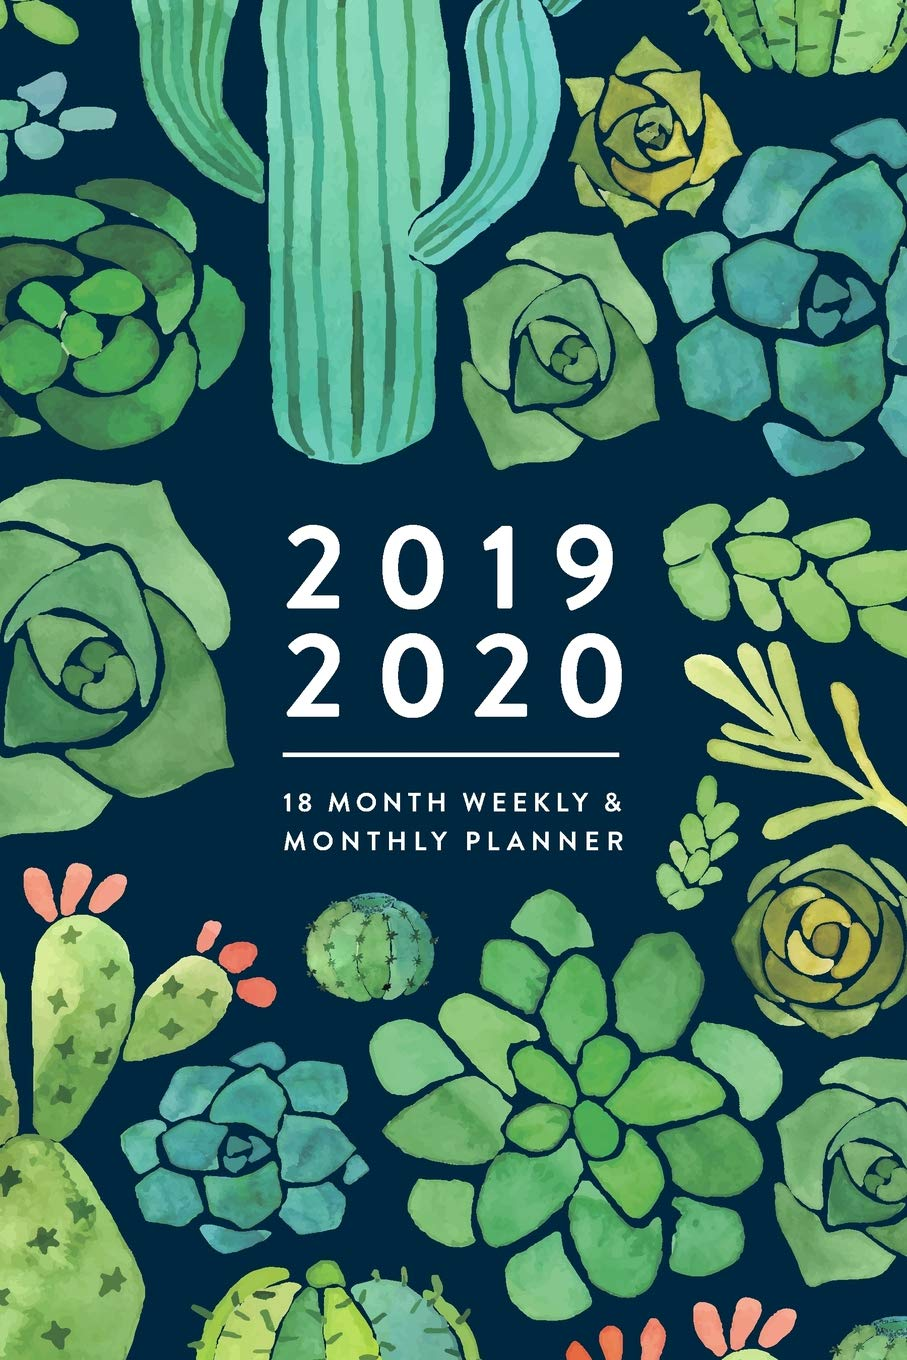 Amazon.com: 2019 2020 | 18 Month Weekly & Monthly Planner ...